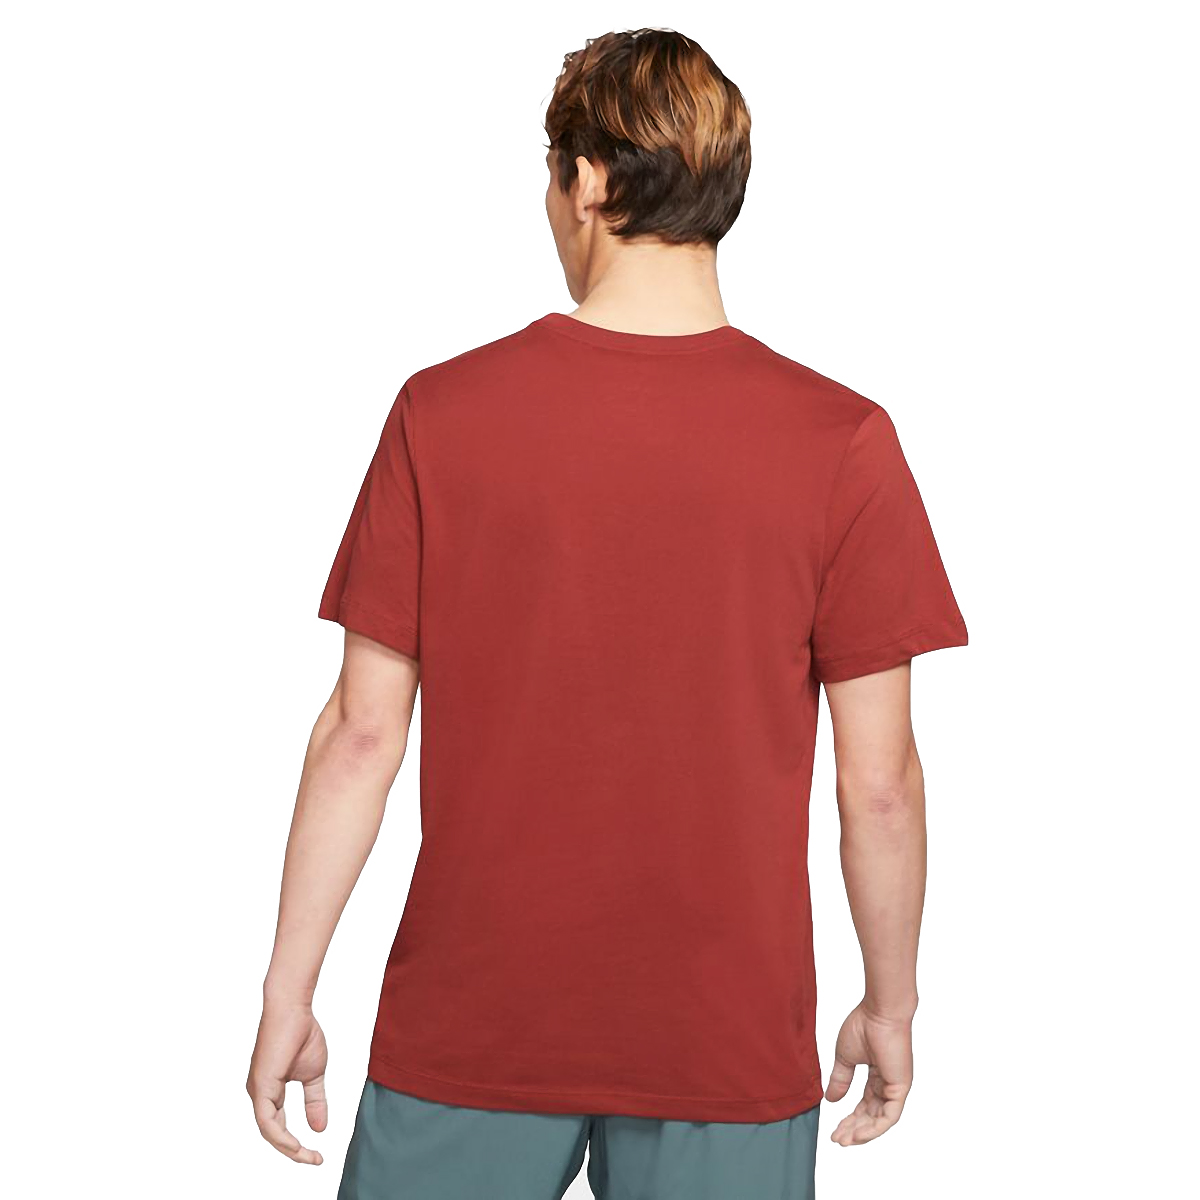 Men's Nike Dri-FIT Short-Sleeve Trail Running T-Shirt - Color: Dark Cayenne - Size: XS, Dark Cayenne, large, image 2